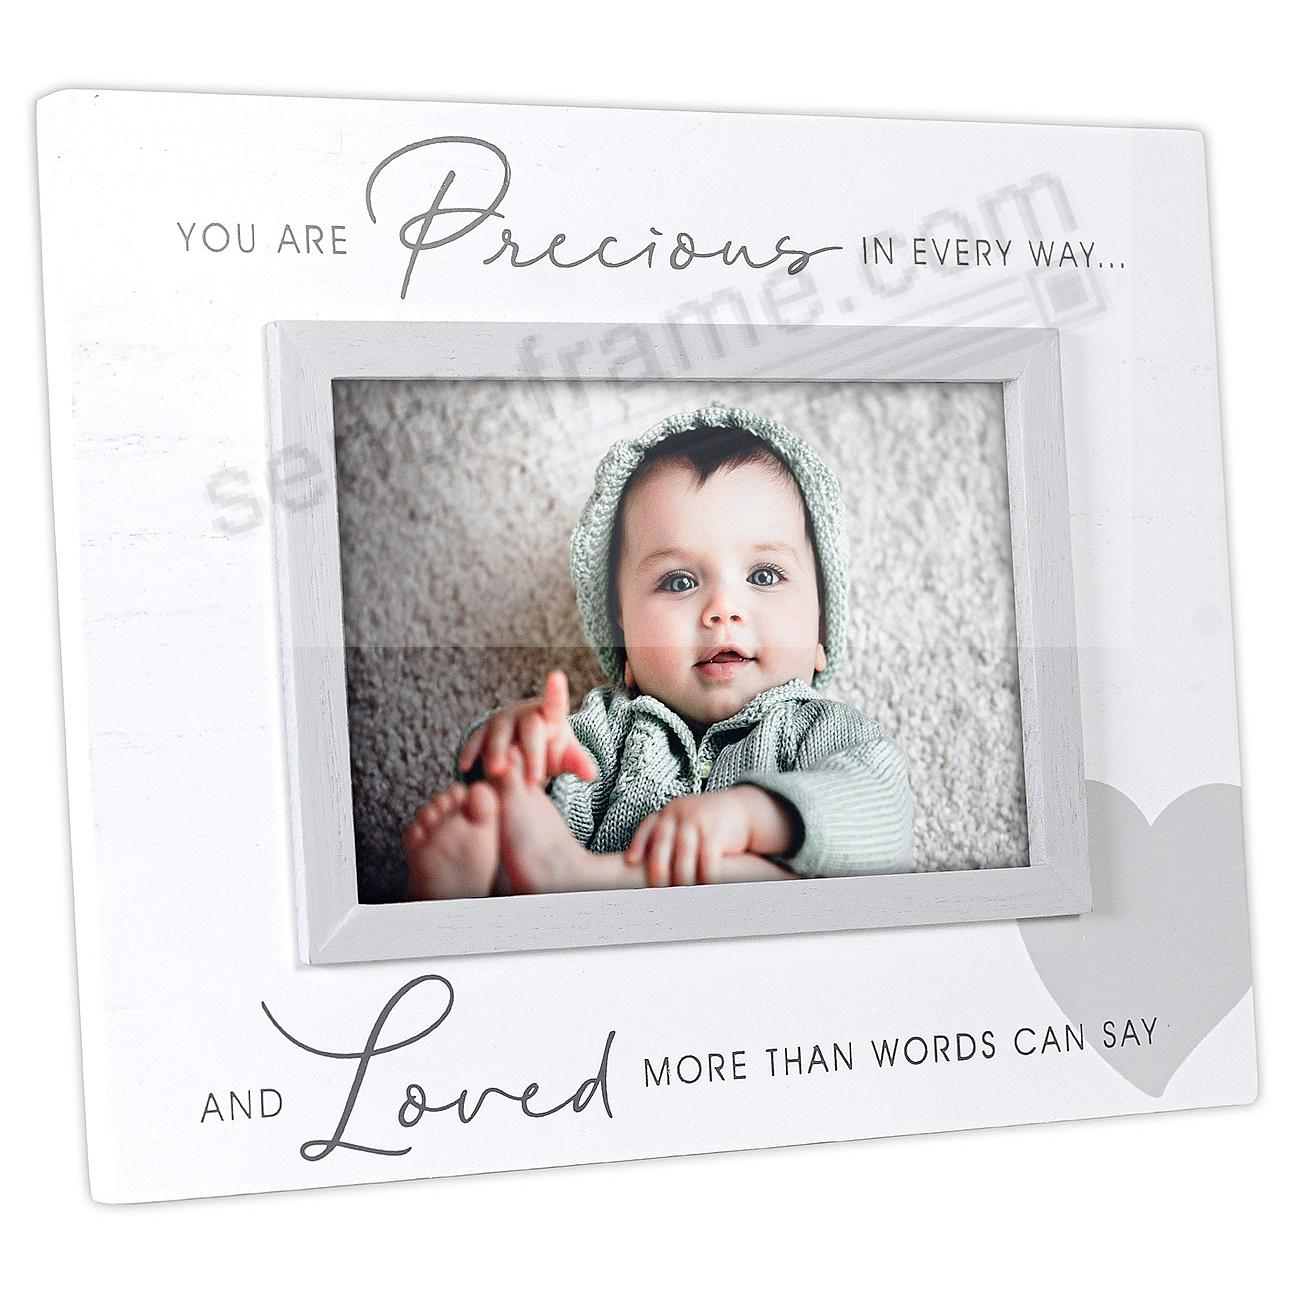 YOU ARE PRECIOUS IN EVERY WAY 4x6 frame by Malden®